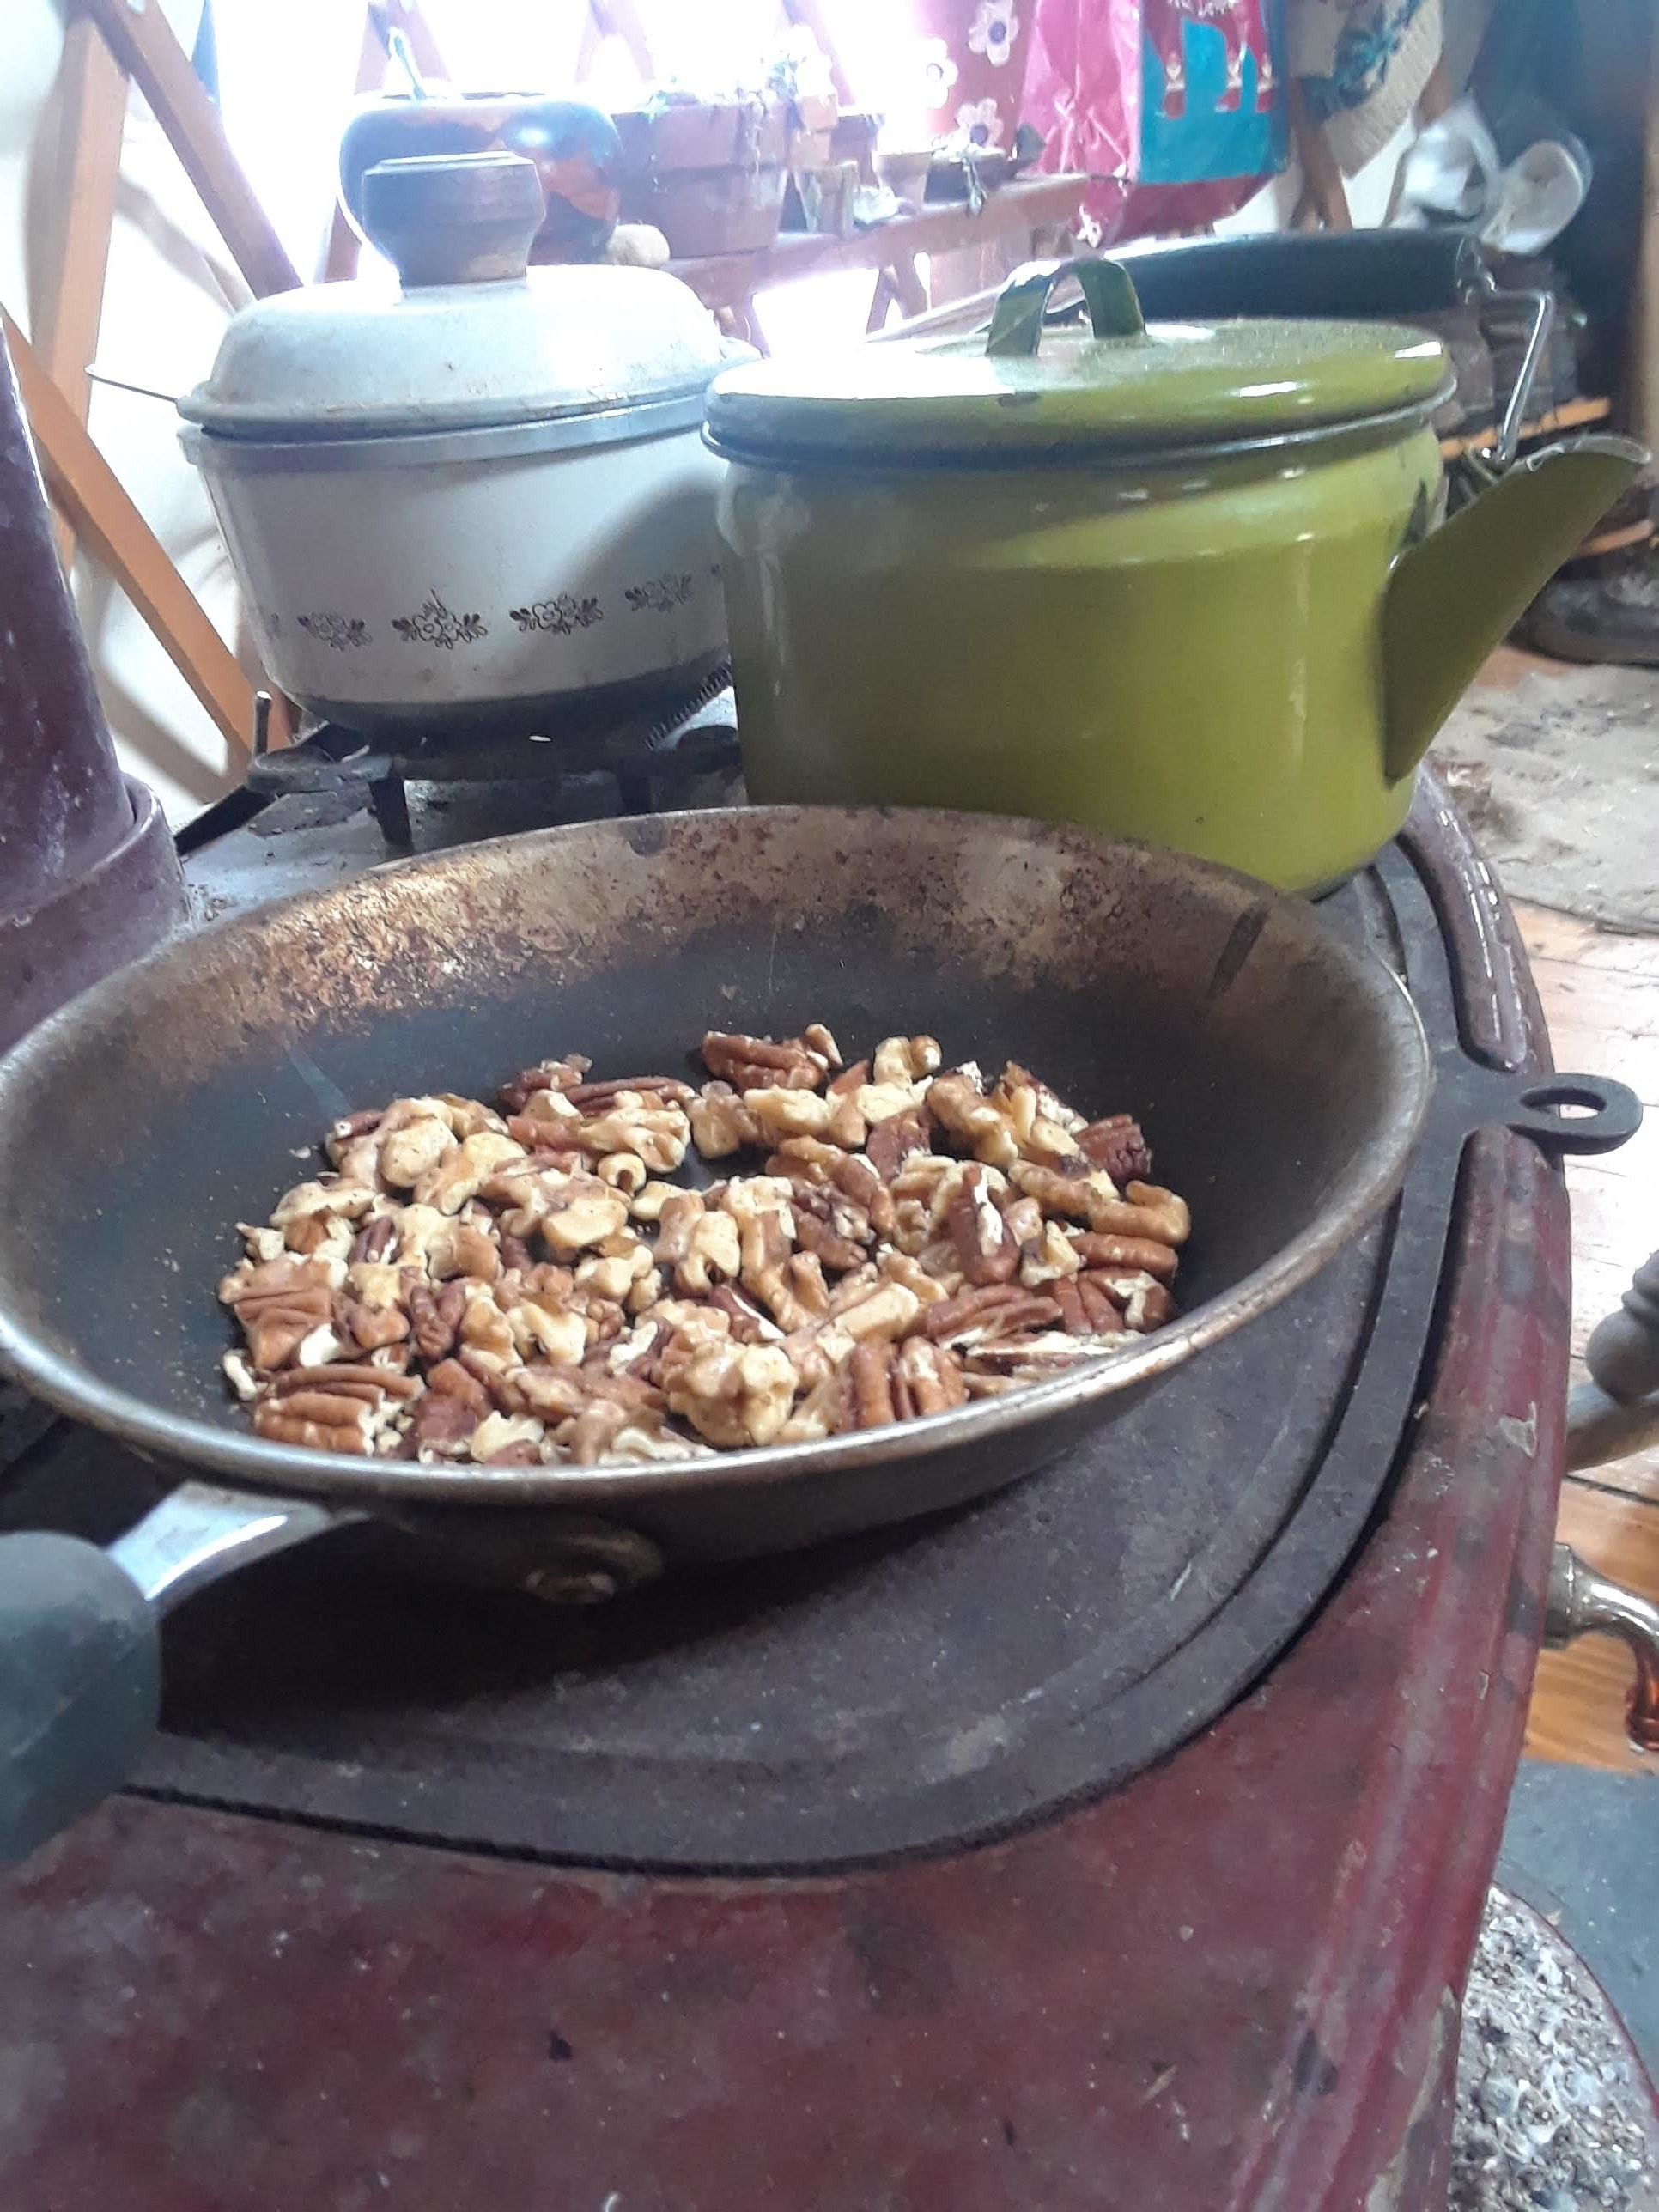 A principle of permaculture—stacking functions. Warming the yurt, keeping breakfast warm, boiling water for tea, and toasting nuts (and cats, not pictured) all at once! This is our designated nut pan, the oils have blackened but it doesn't affect the taste.